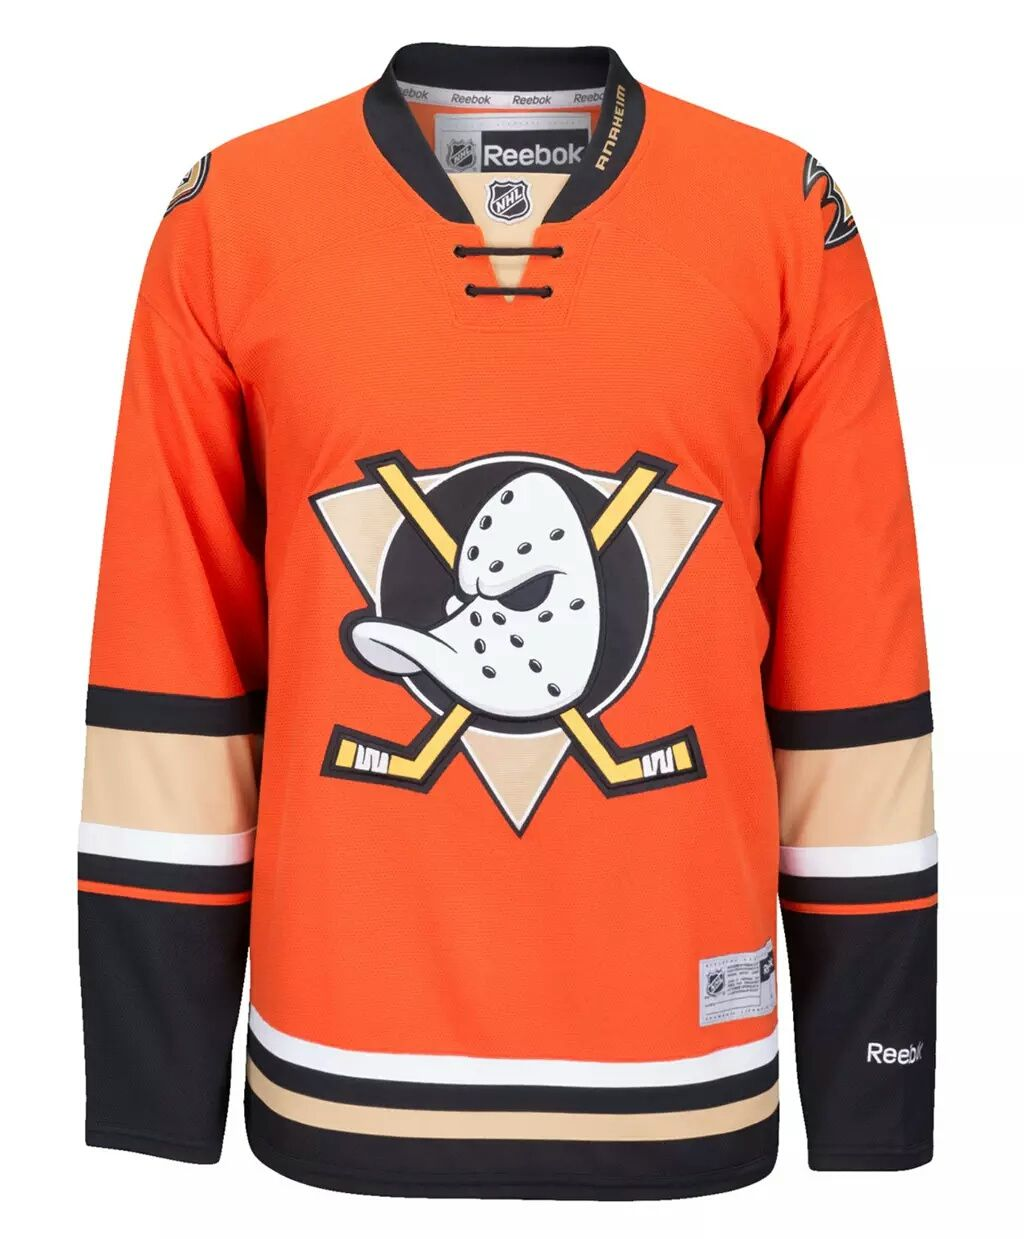 low priced 3de82 9ca42 It's Official: Anaheim Ducks New 2015-16 Third Jersey Leaks ...